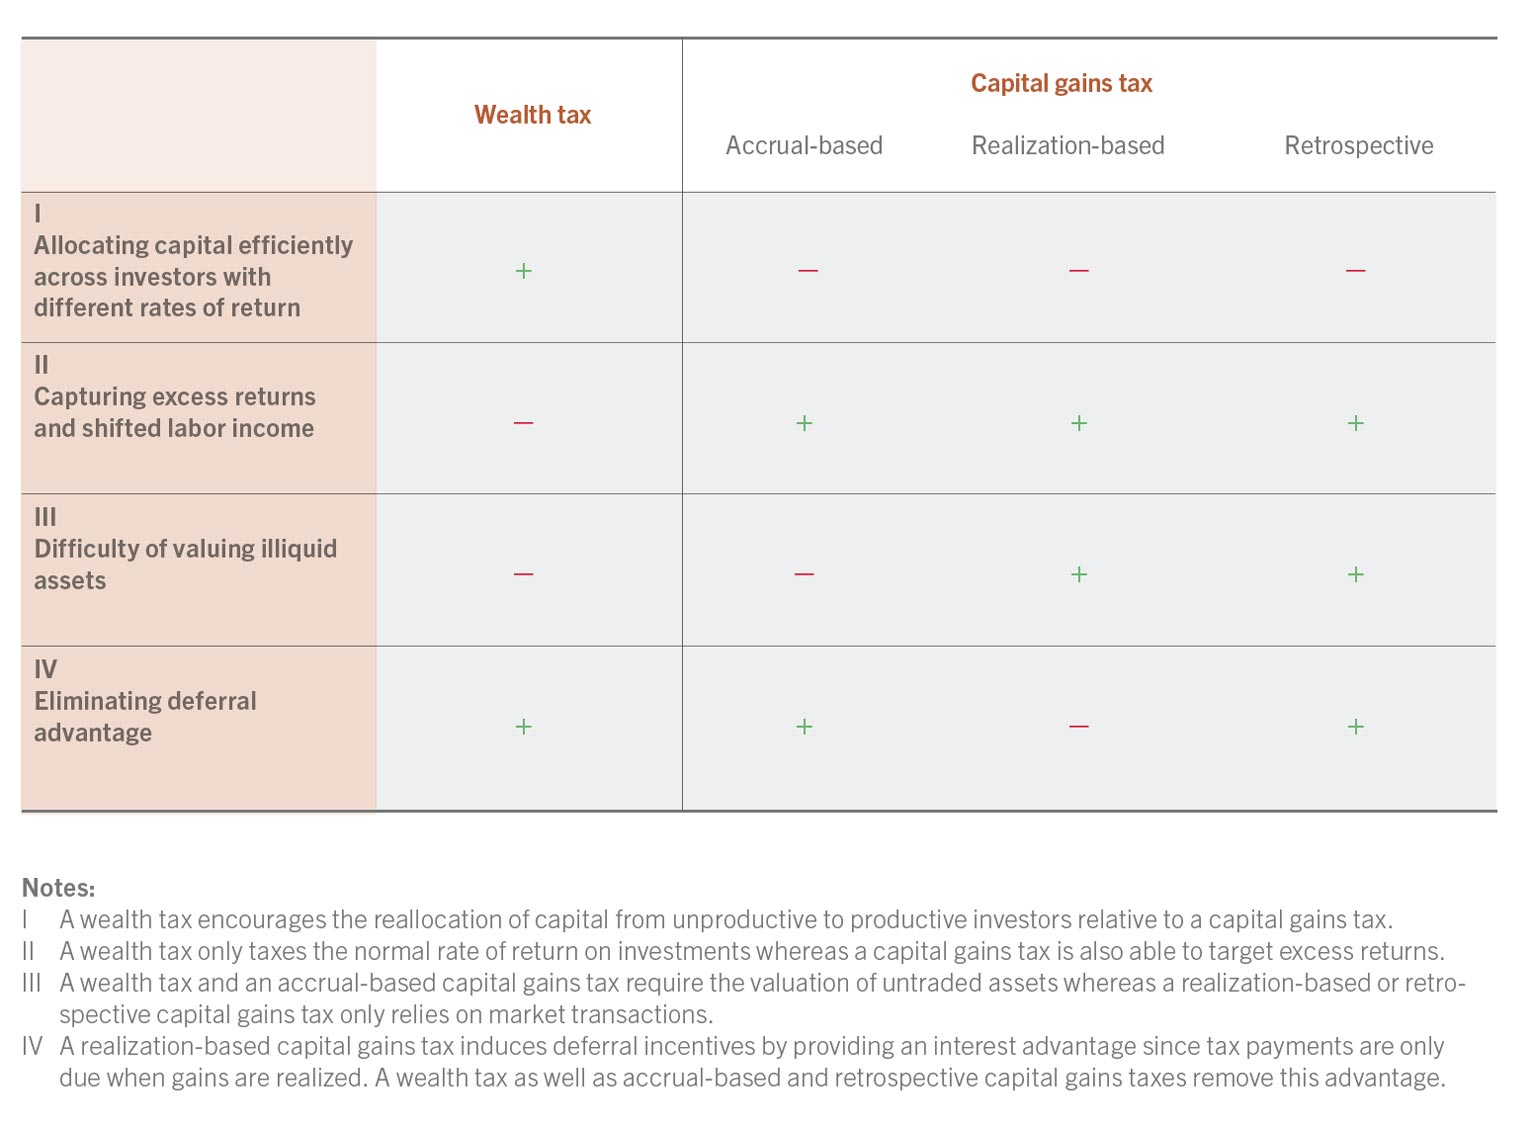 Overview of the pros and cons of wealth versus capital gains taxes, source: Scheuer (2020)